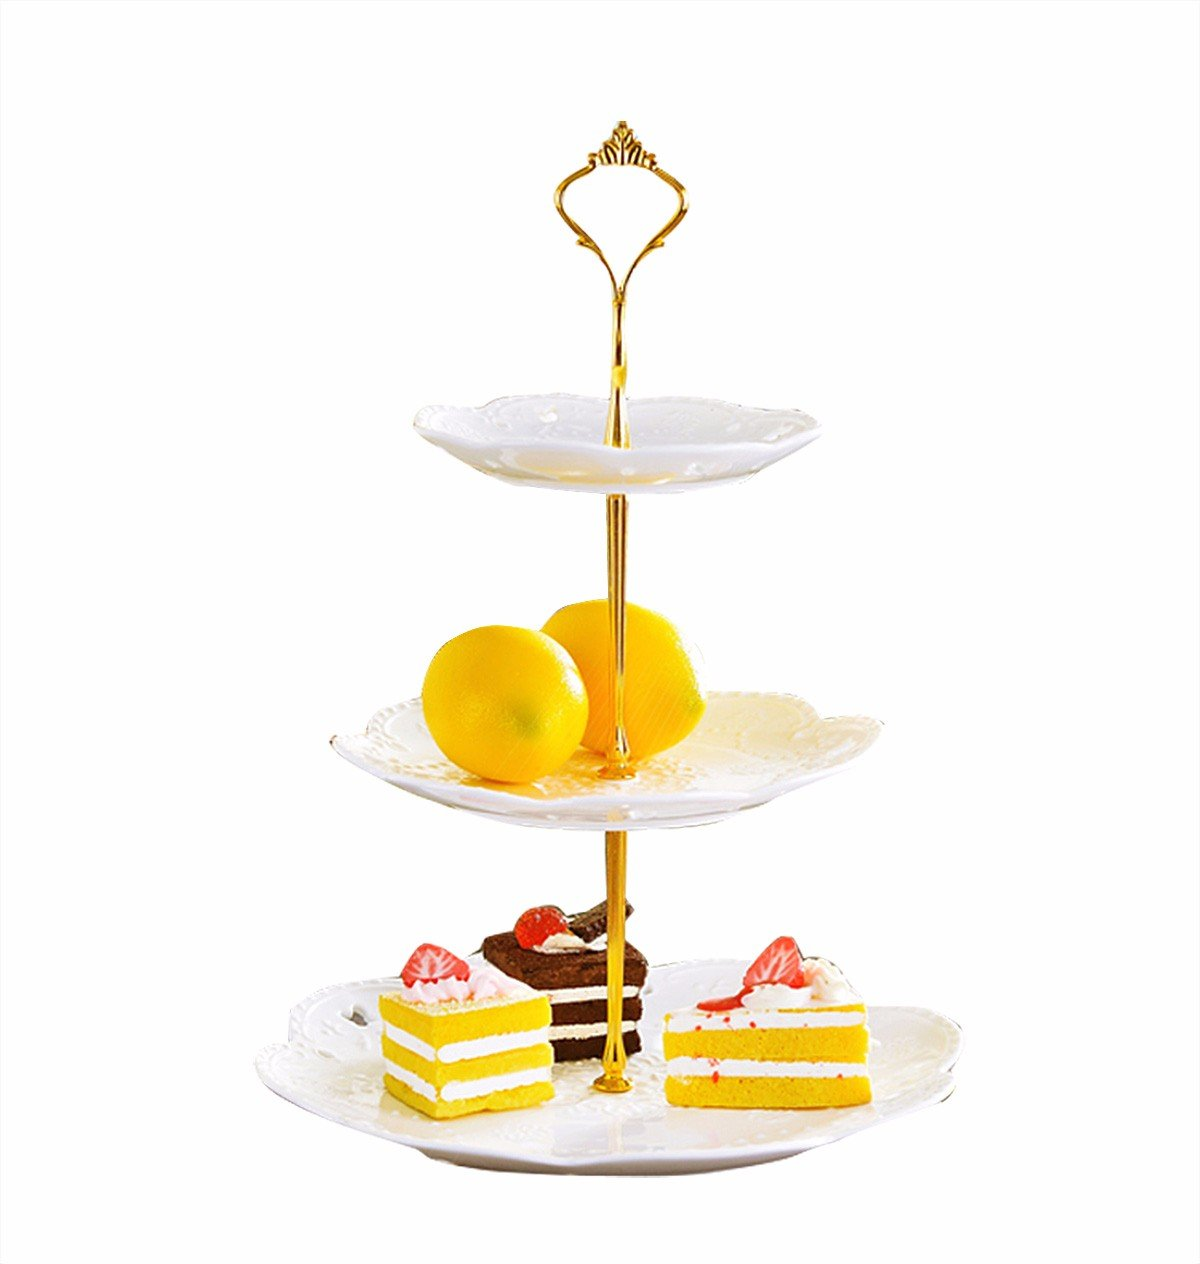 Freebily 3 Tier Cake Stand Cake Plate Display Holder Handle Fittings Finish Metal for Tea Shop Room Hotel Gold One Size by Freebily (Image #2)